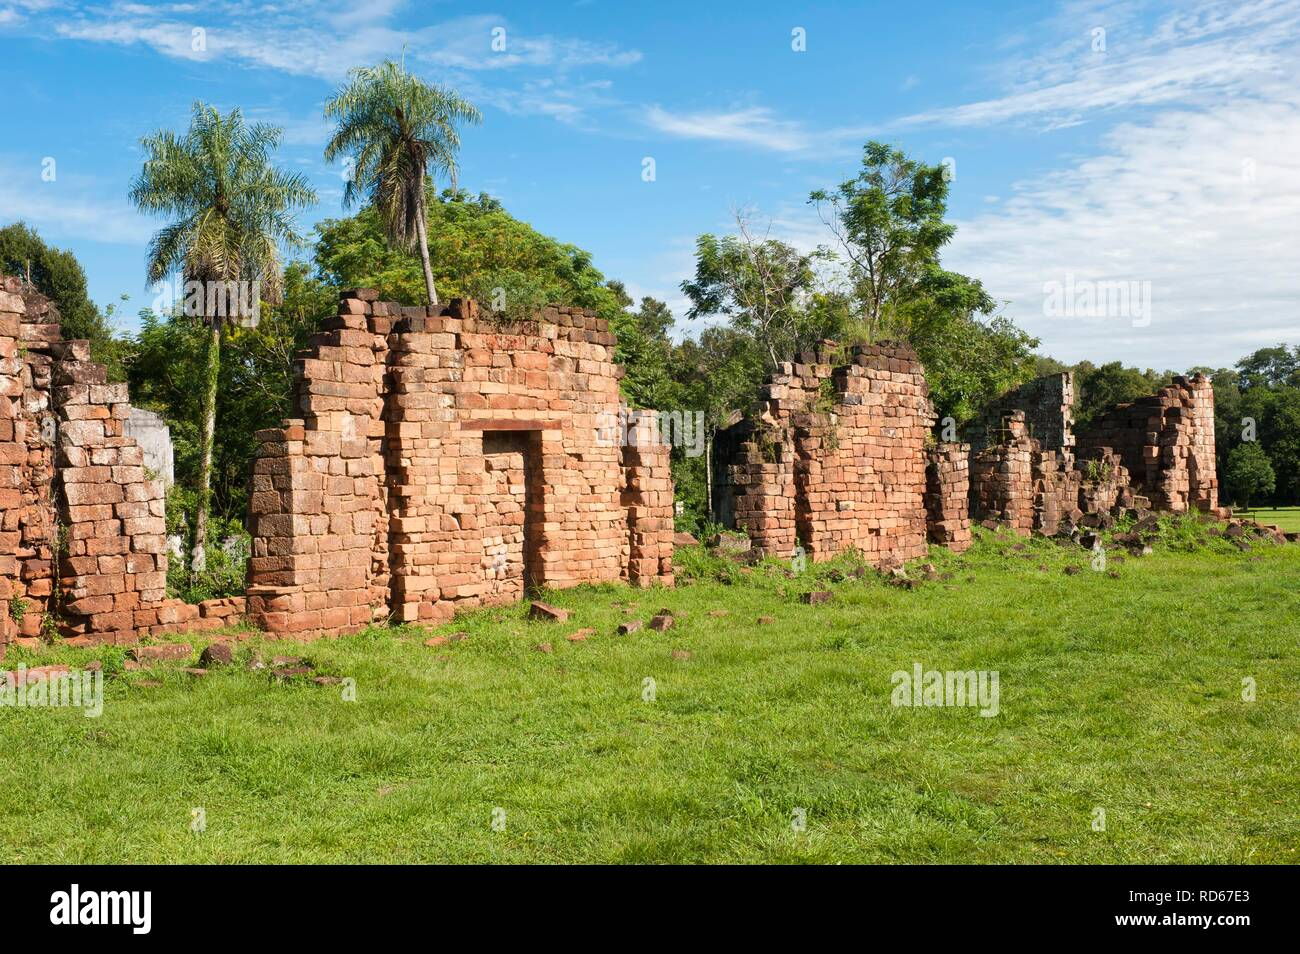 Ruins of the Jesuit mission at Santa Ana, Misiones Province, Argentina, South America - Stock Image